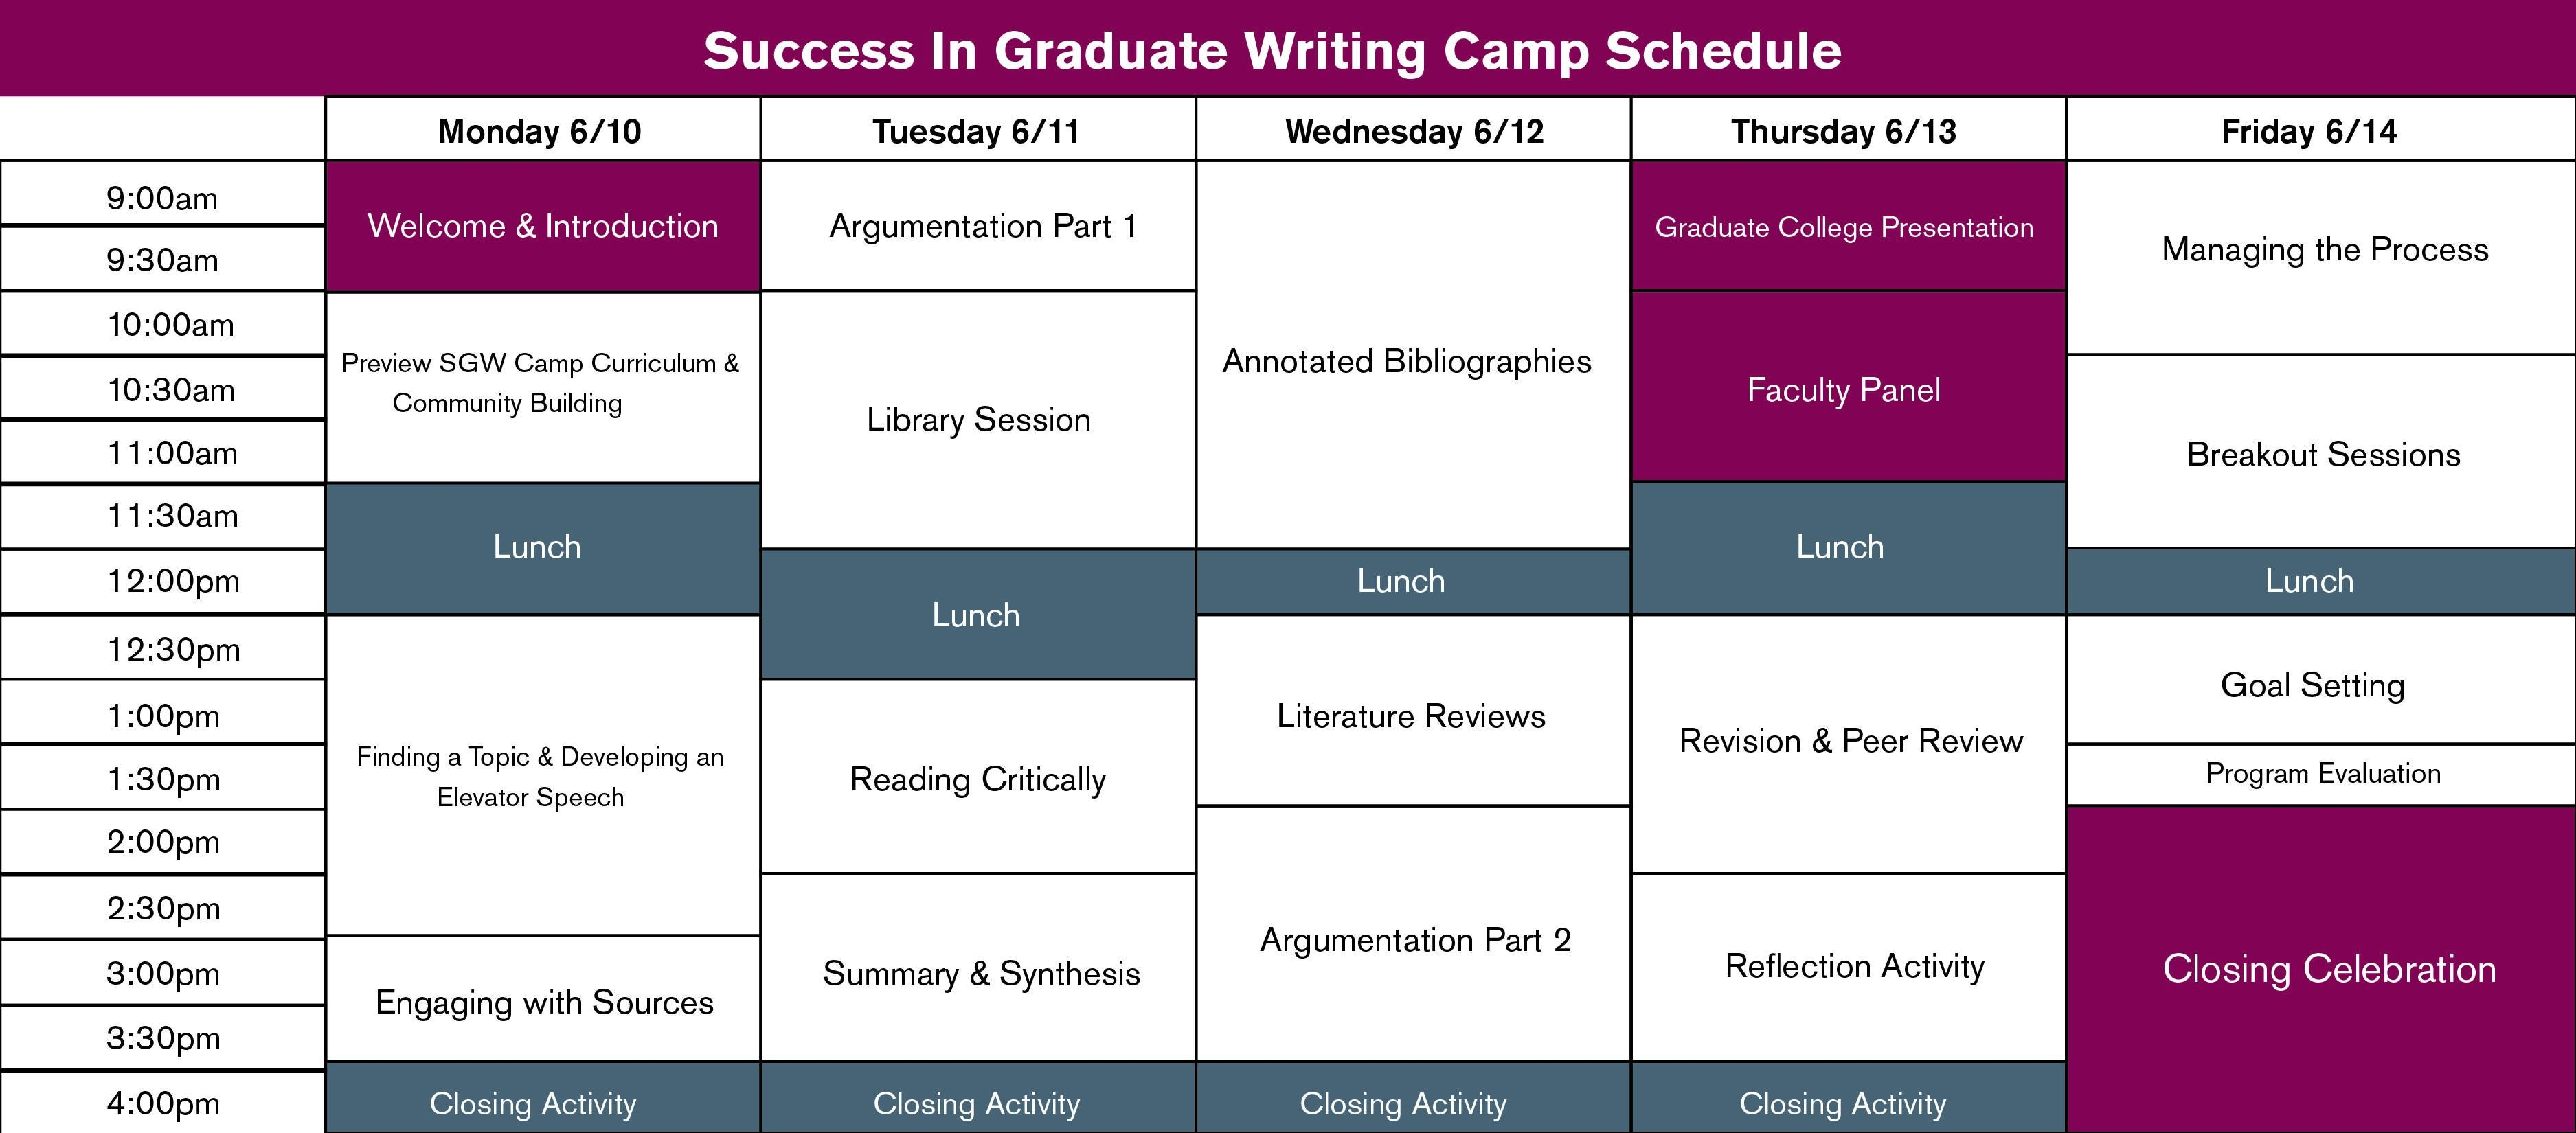 ASU summer writing camps for graduate students